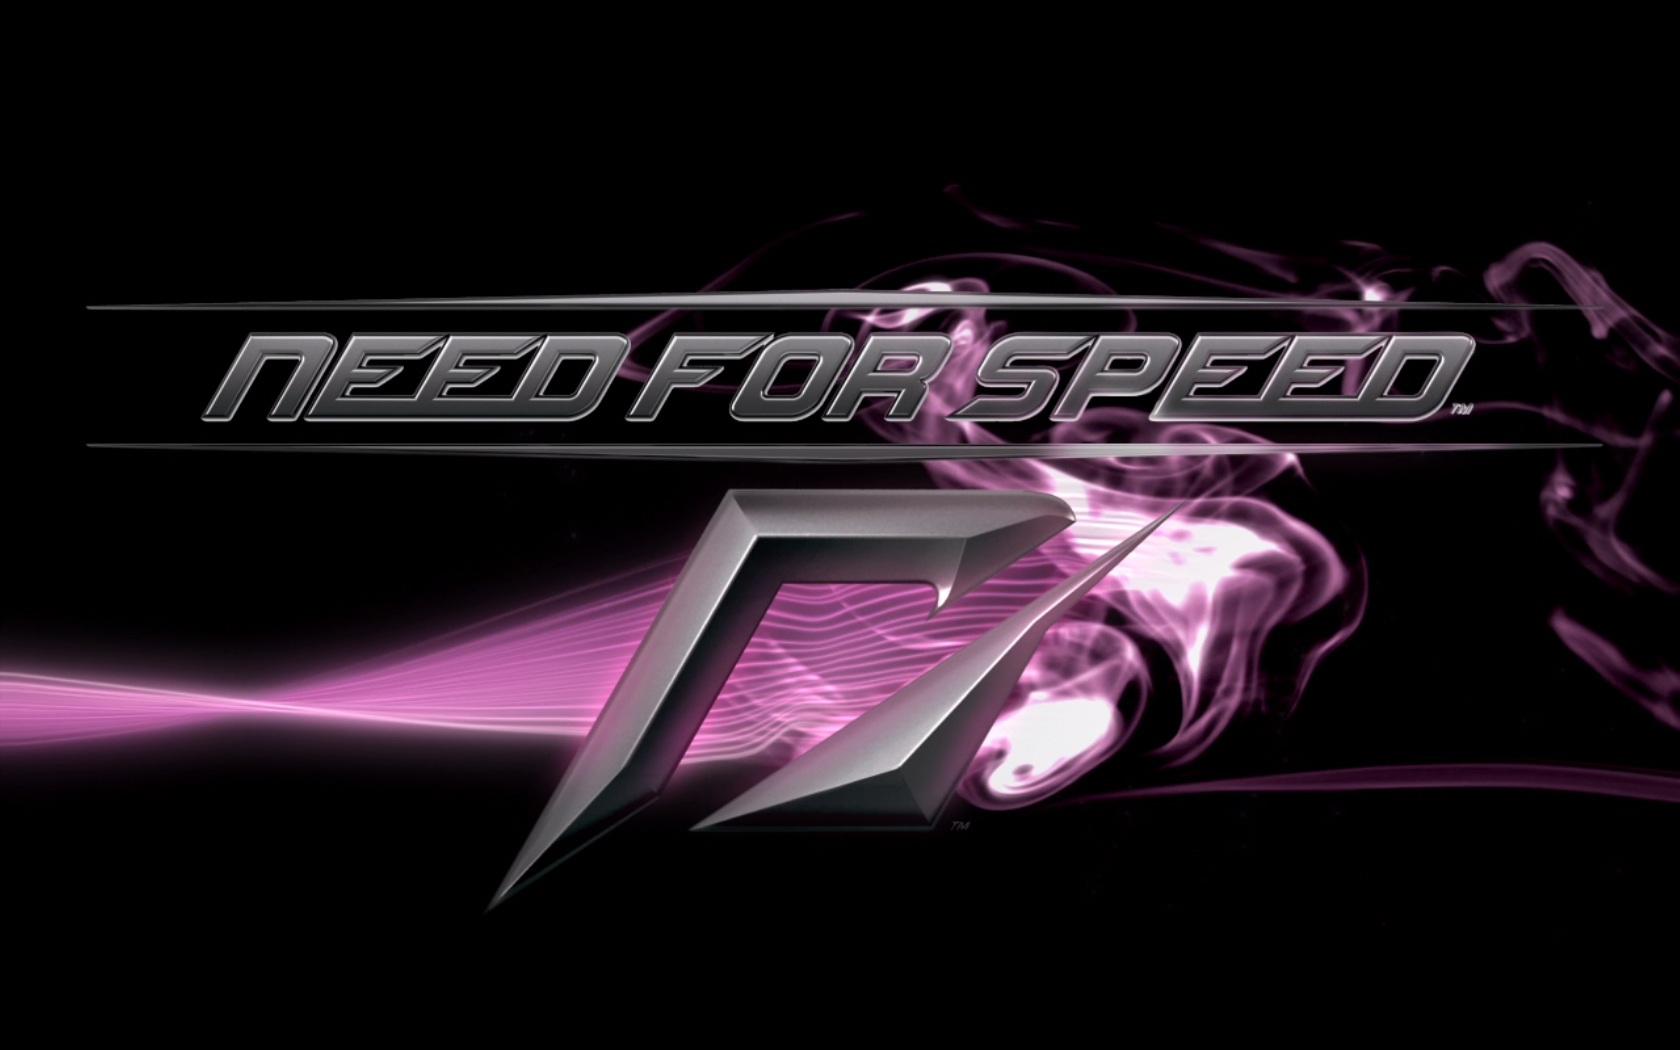 Need for speed android games android zone idroid khmer for Need for speed android